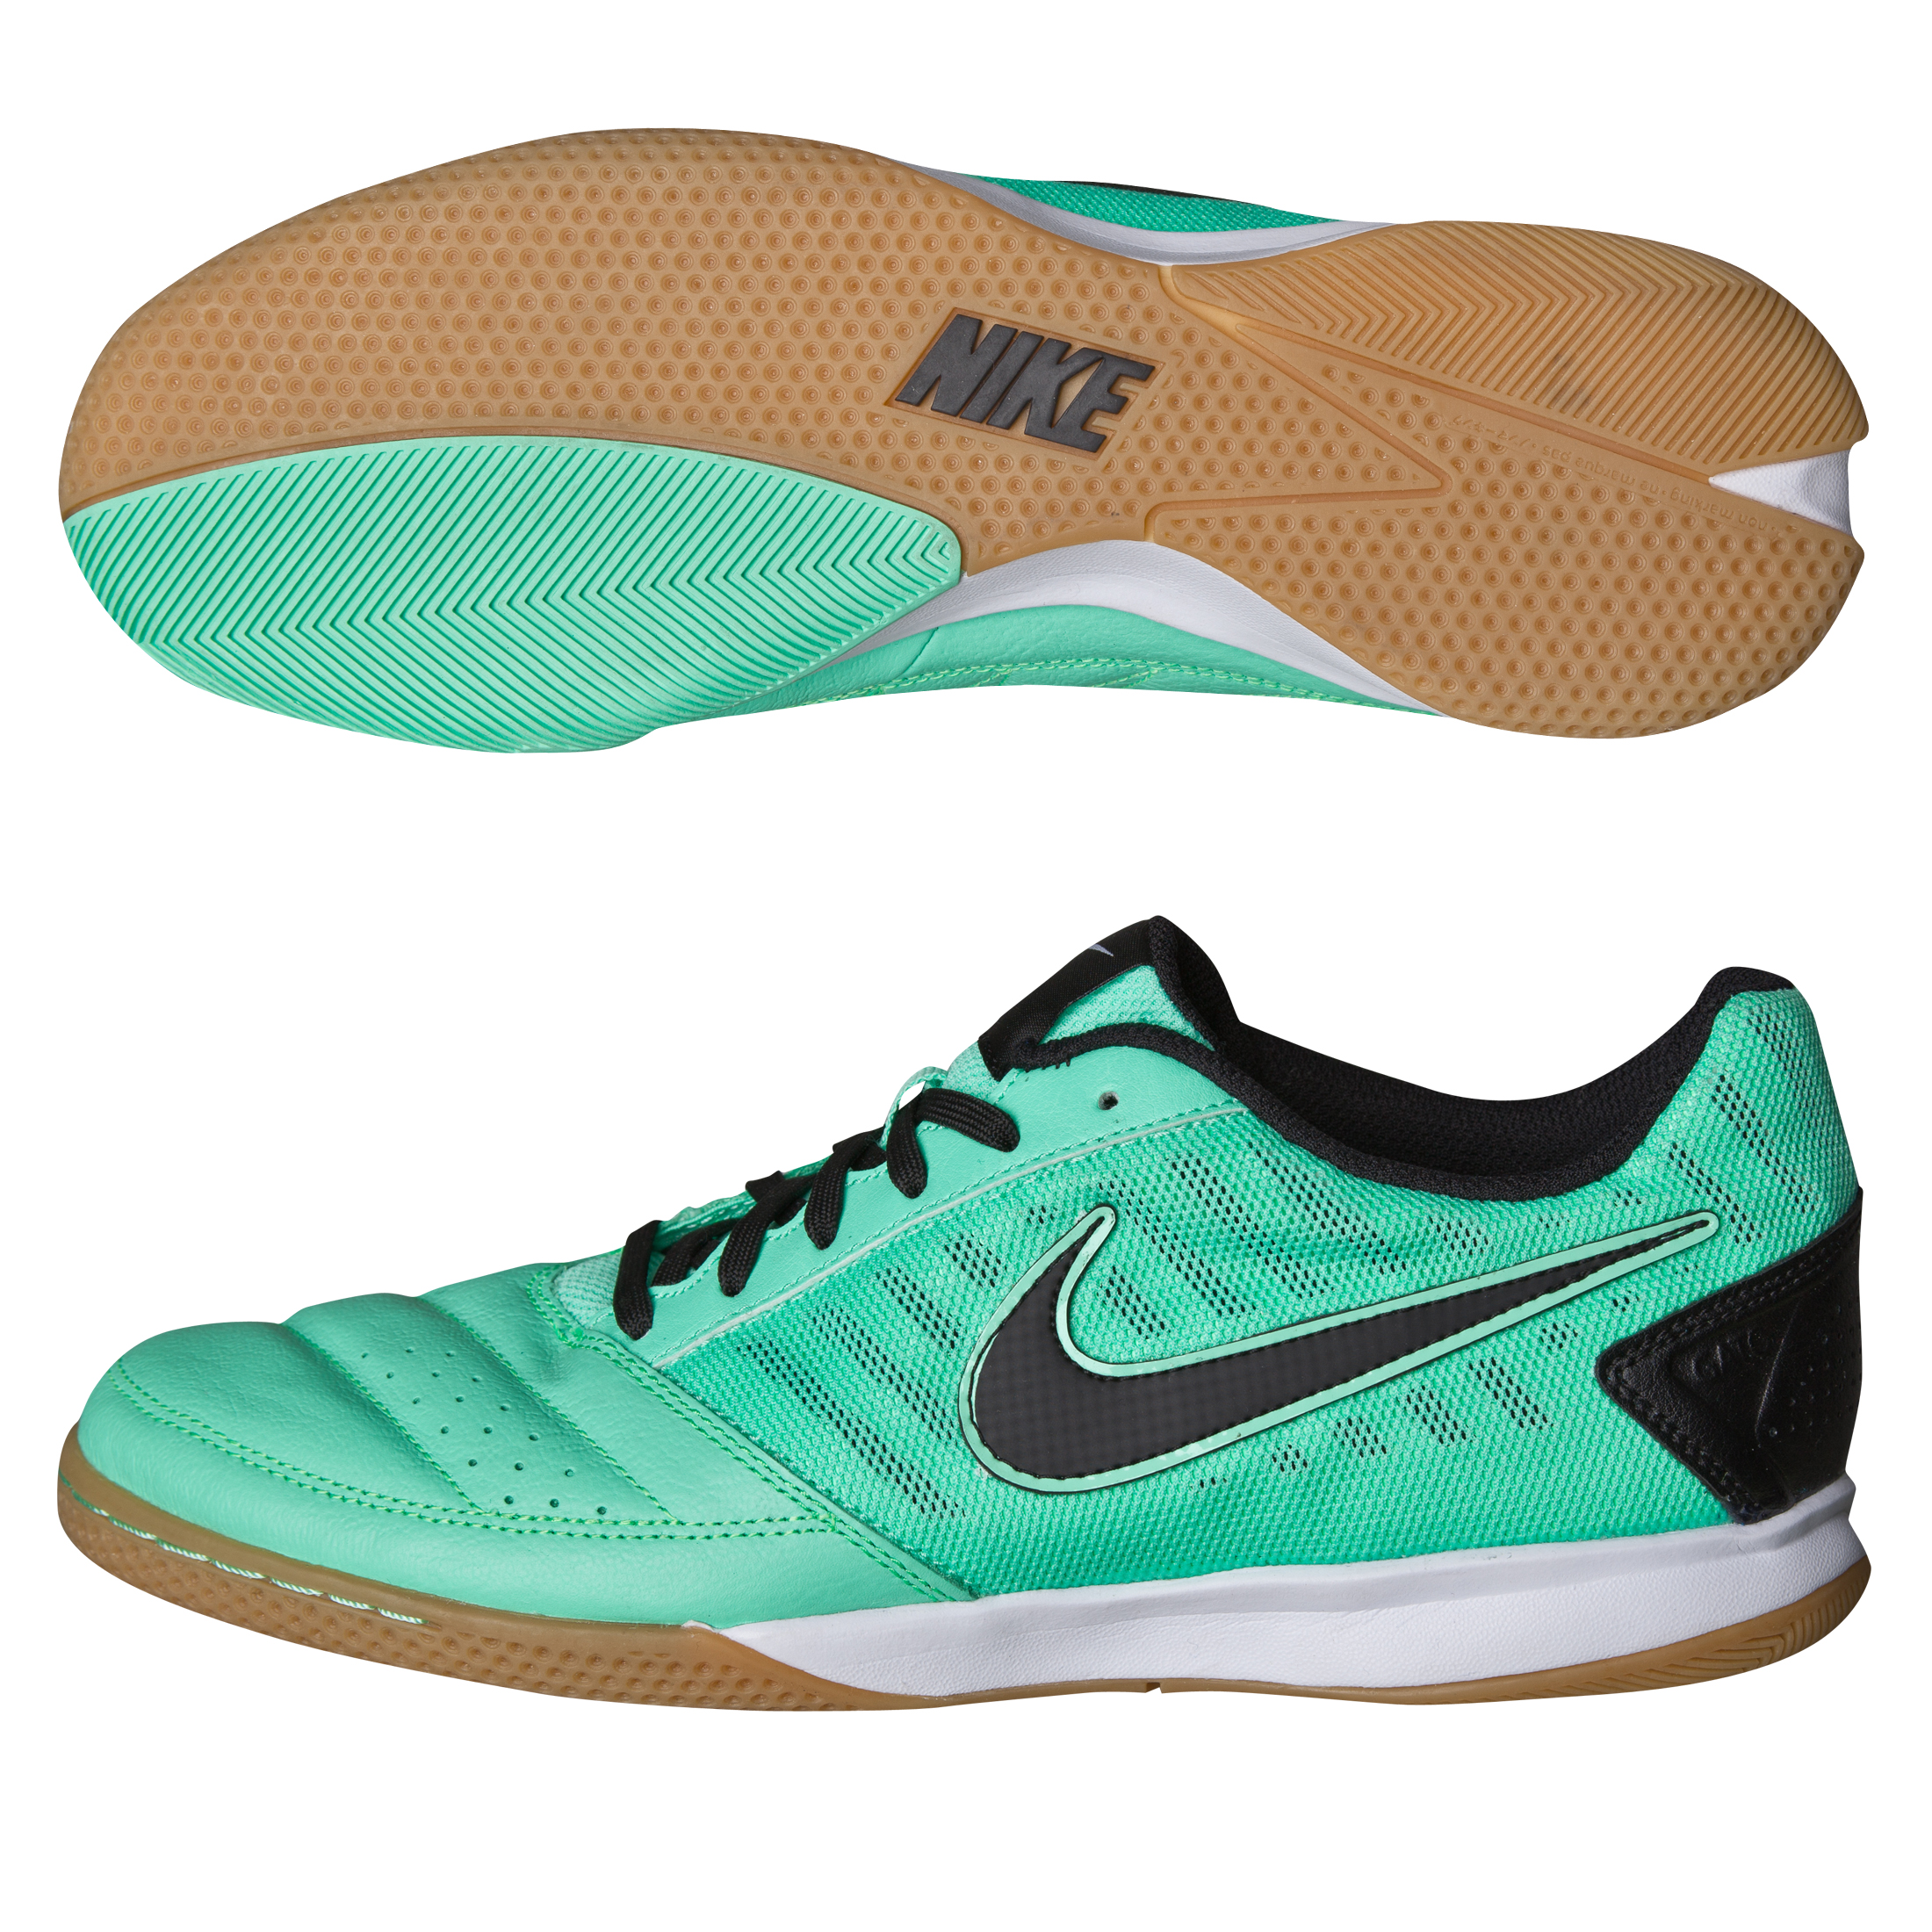 Nike Gato II Trainers - Green Glow/Black/White Green